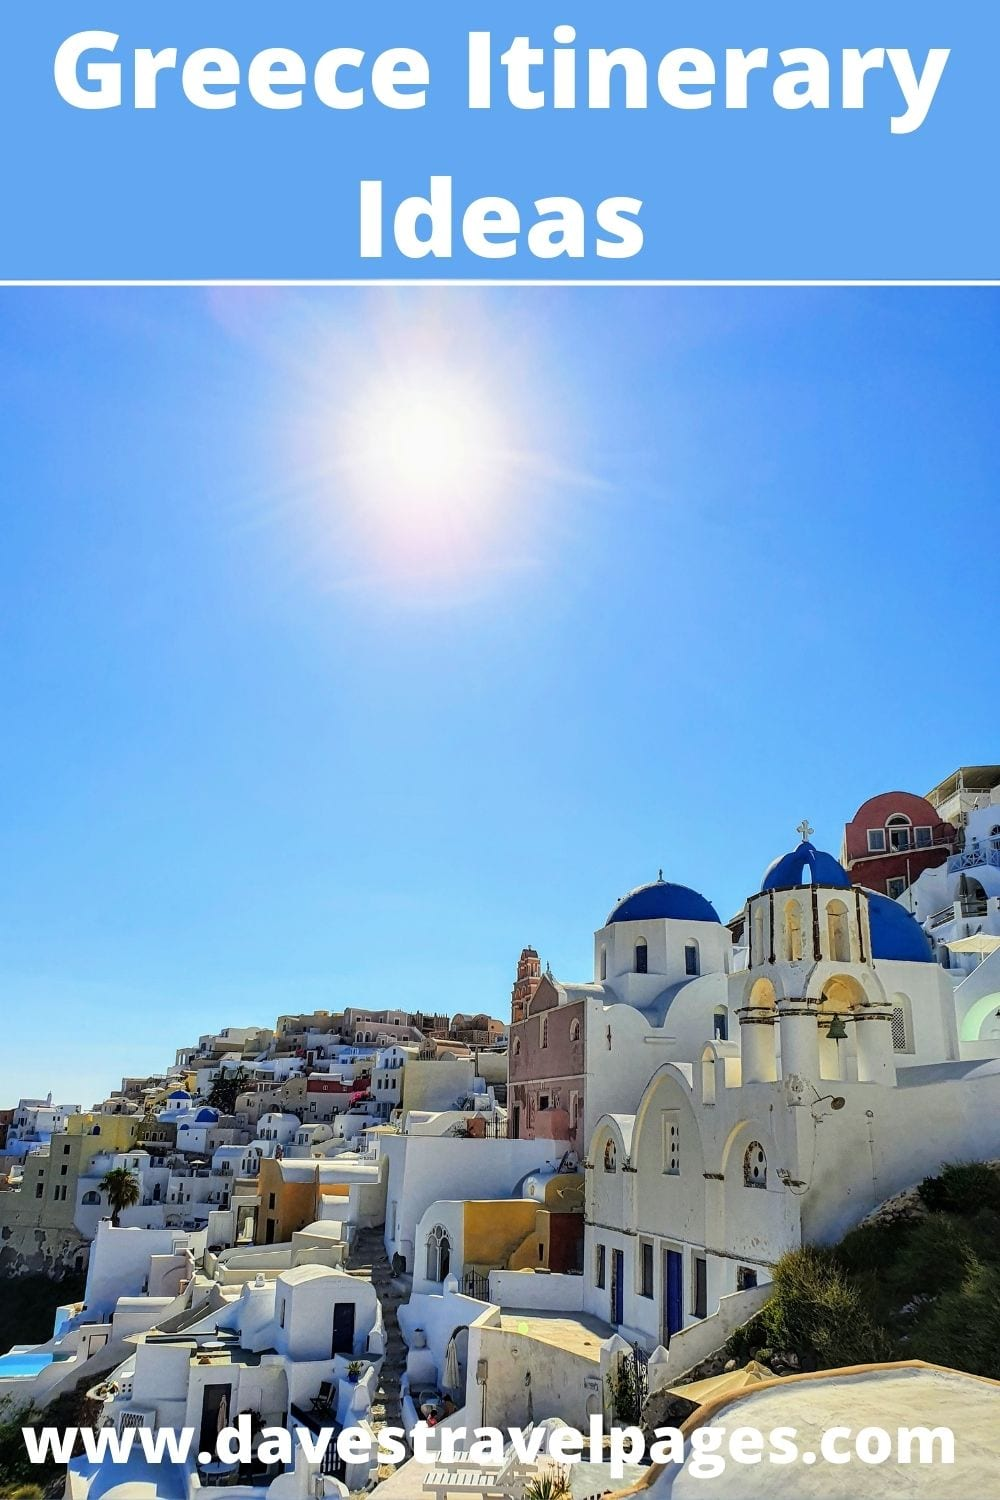 Greece Itinerary Ideas and Suggestions